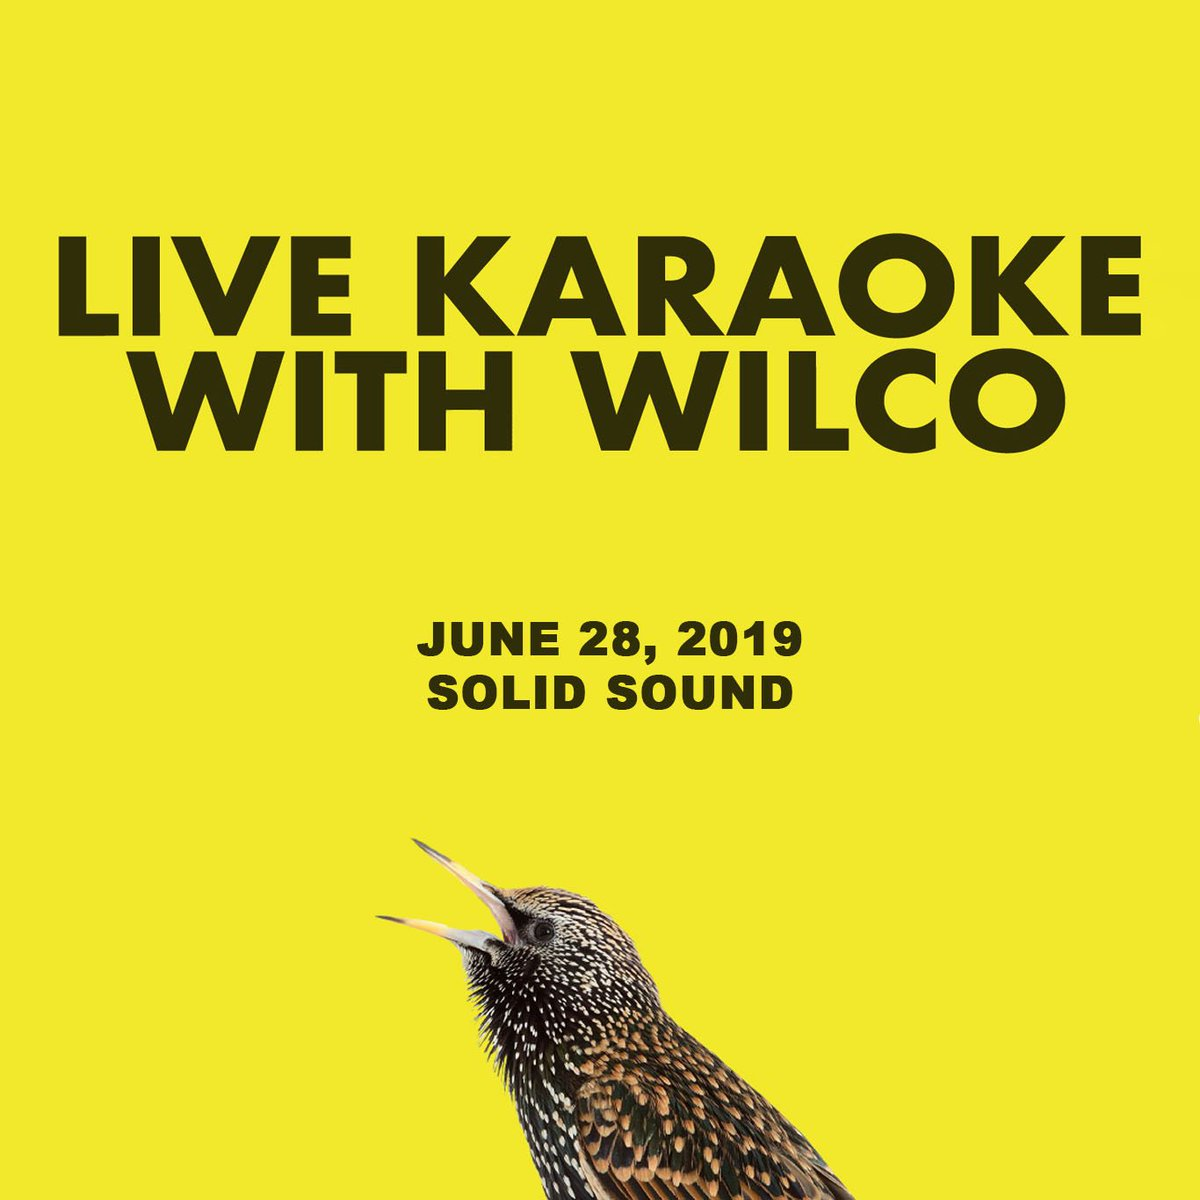 Solid Sound Festival on Twitter: